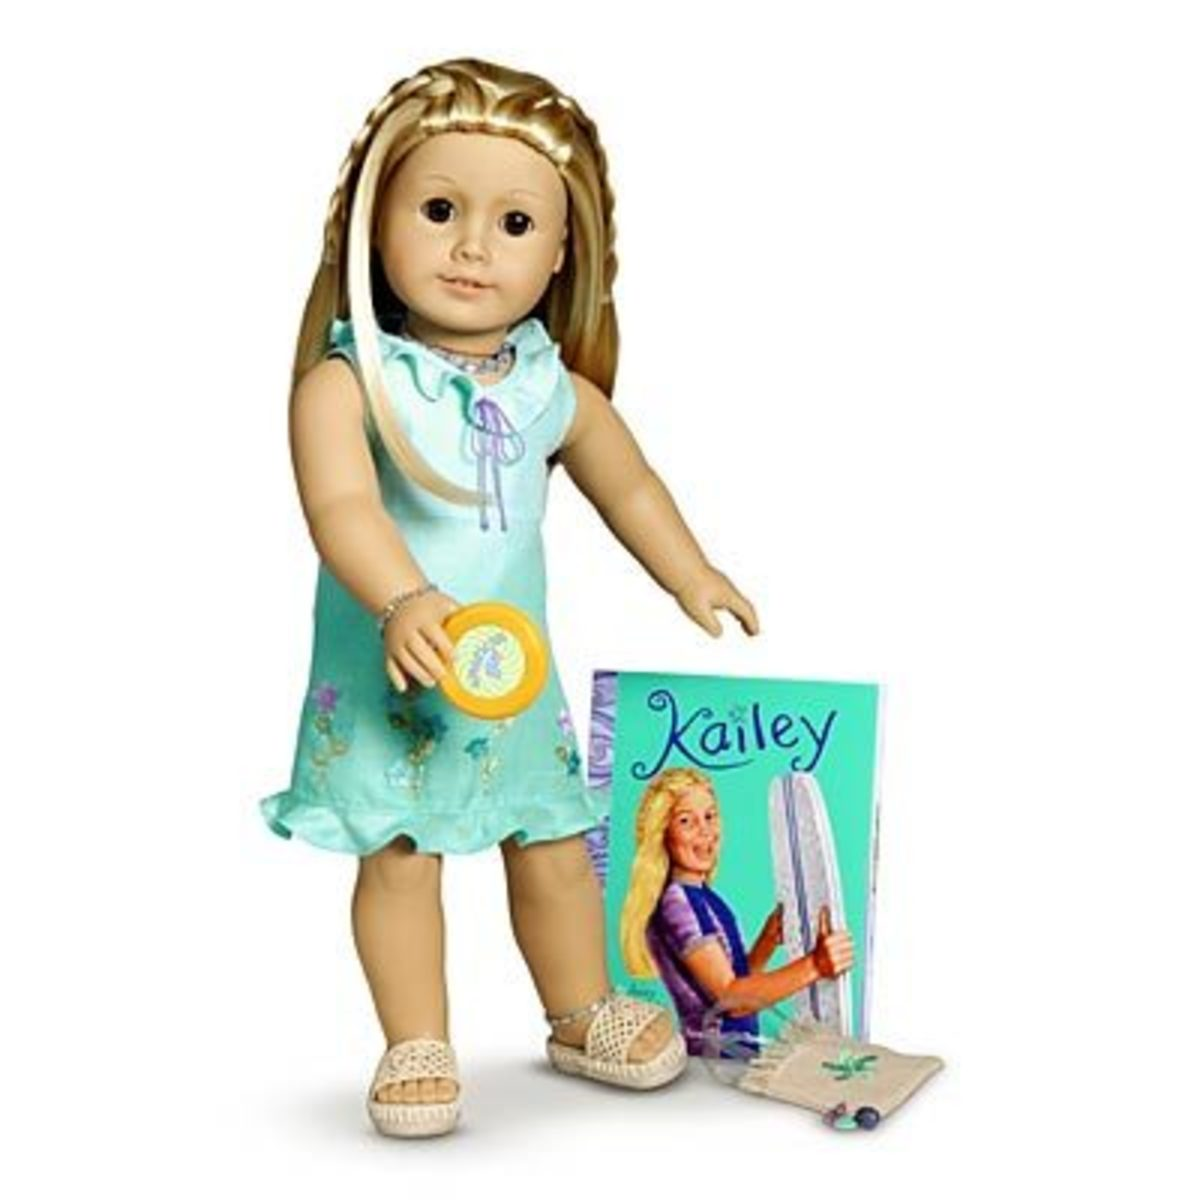 Kailey, the 2003 Girl of the Year